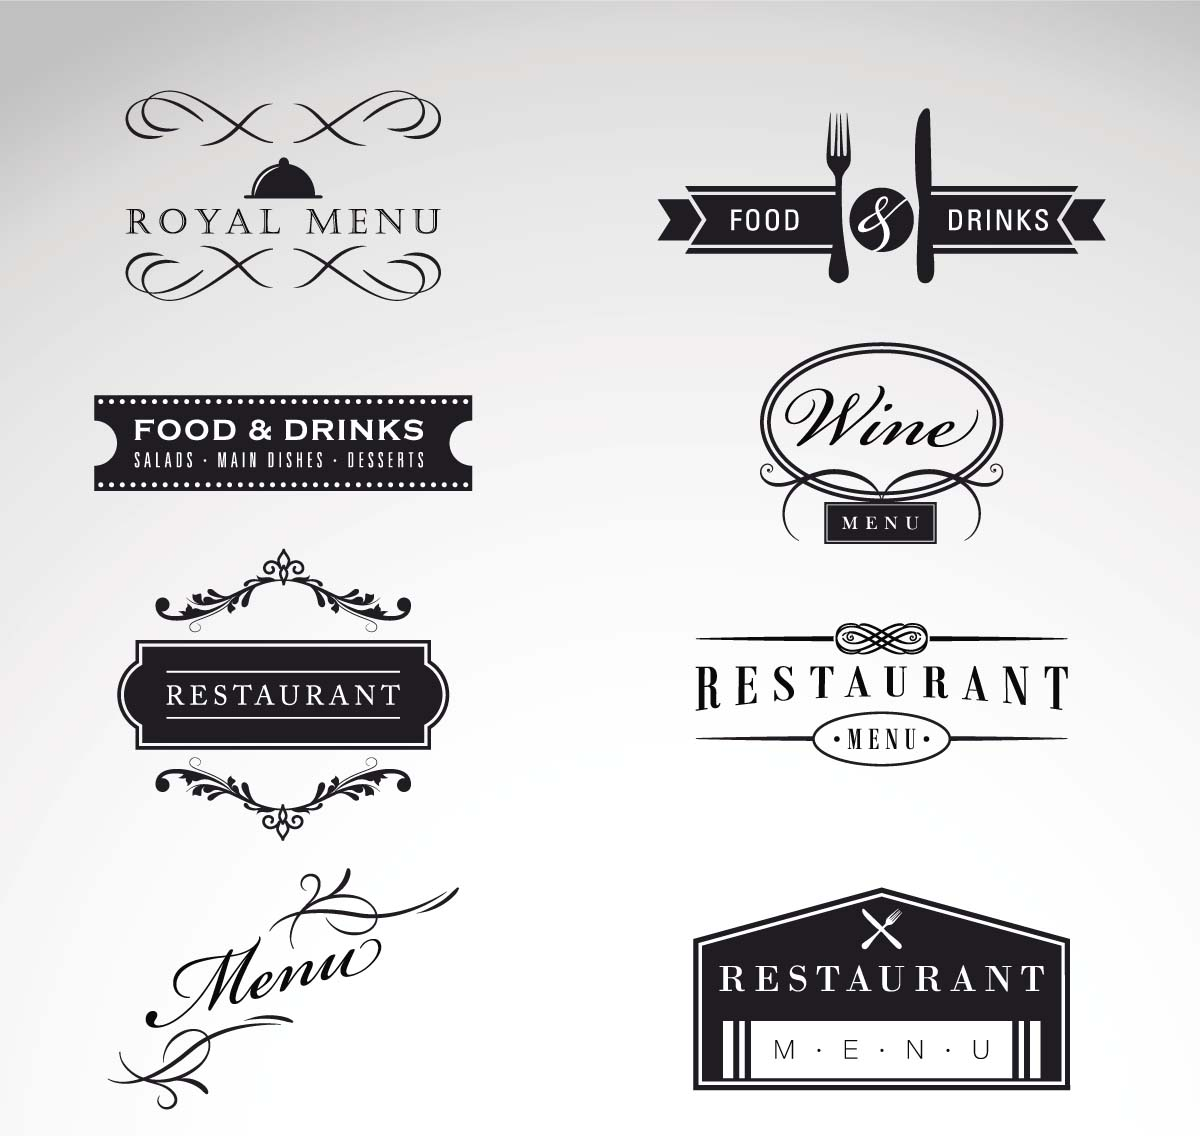 Restaurant Design Vector : Vintage logo restaurant menu vector set free download